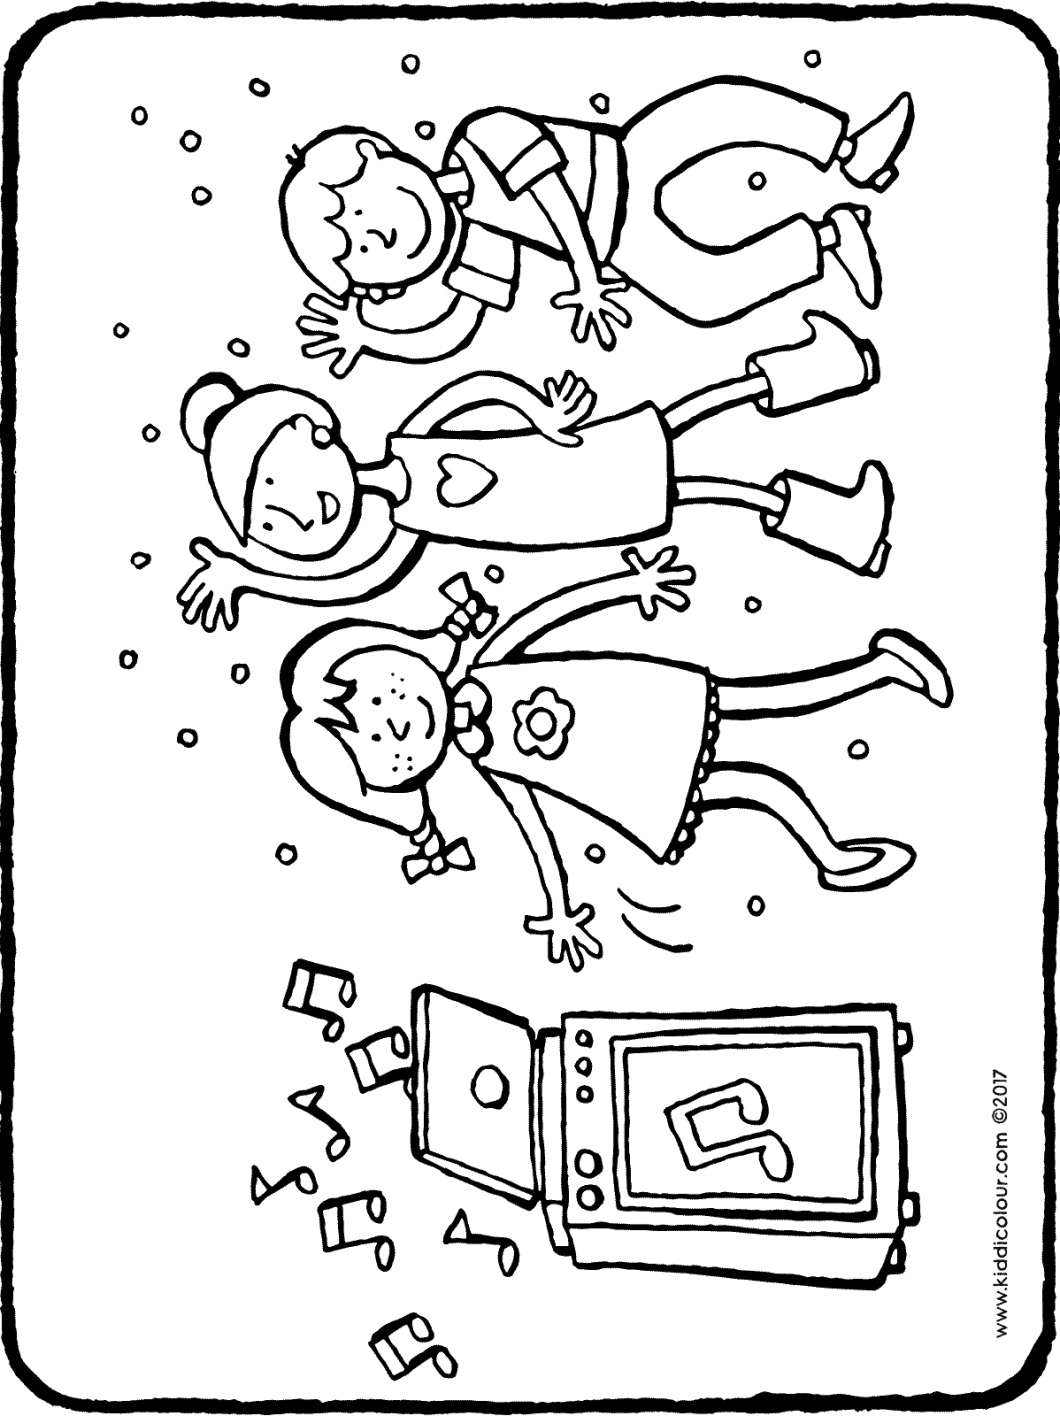 children's disco colouring page drawing picture 01H